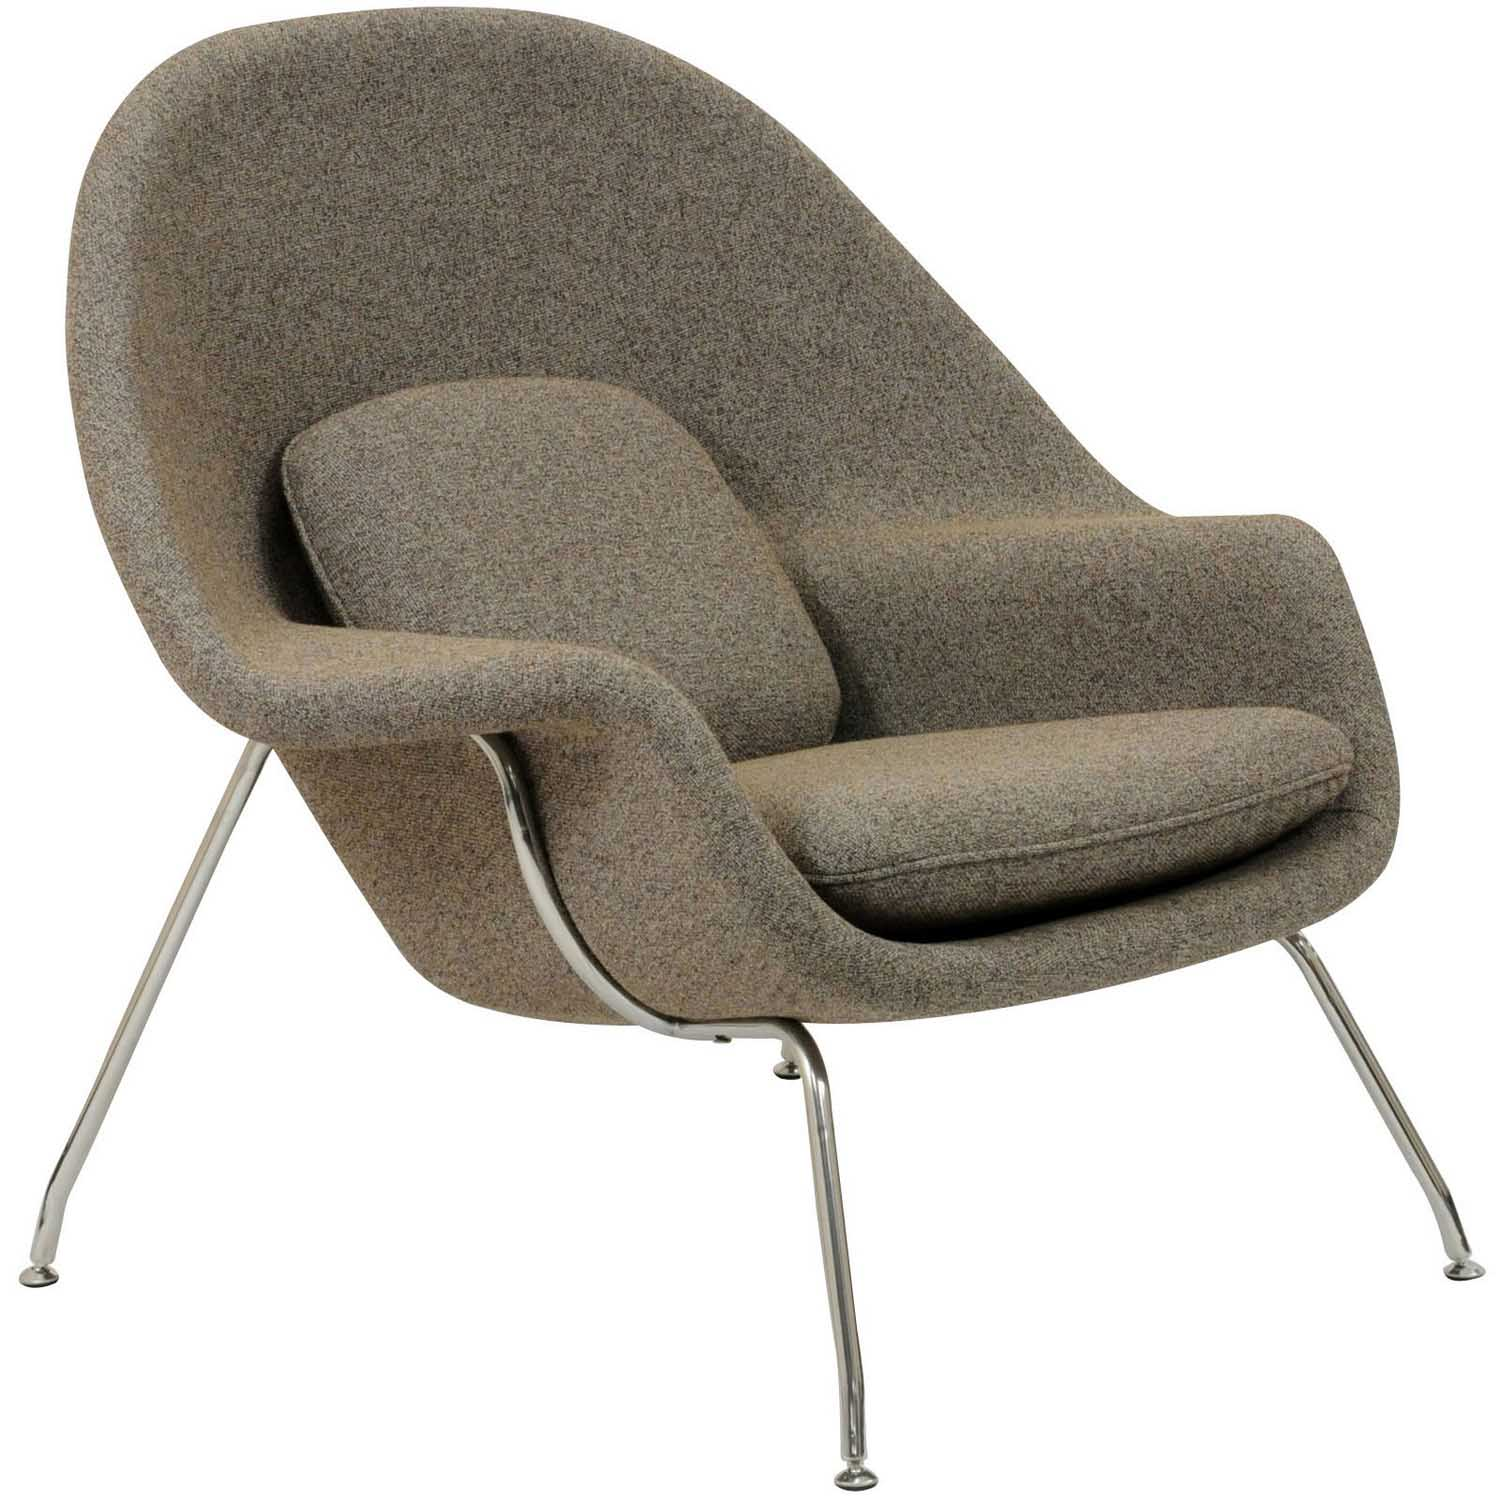 Modway W Fabric Lounge Chair - Oatmeal